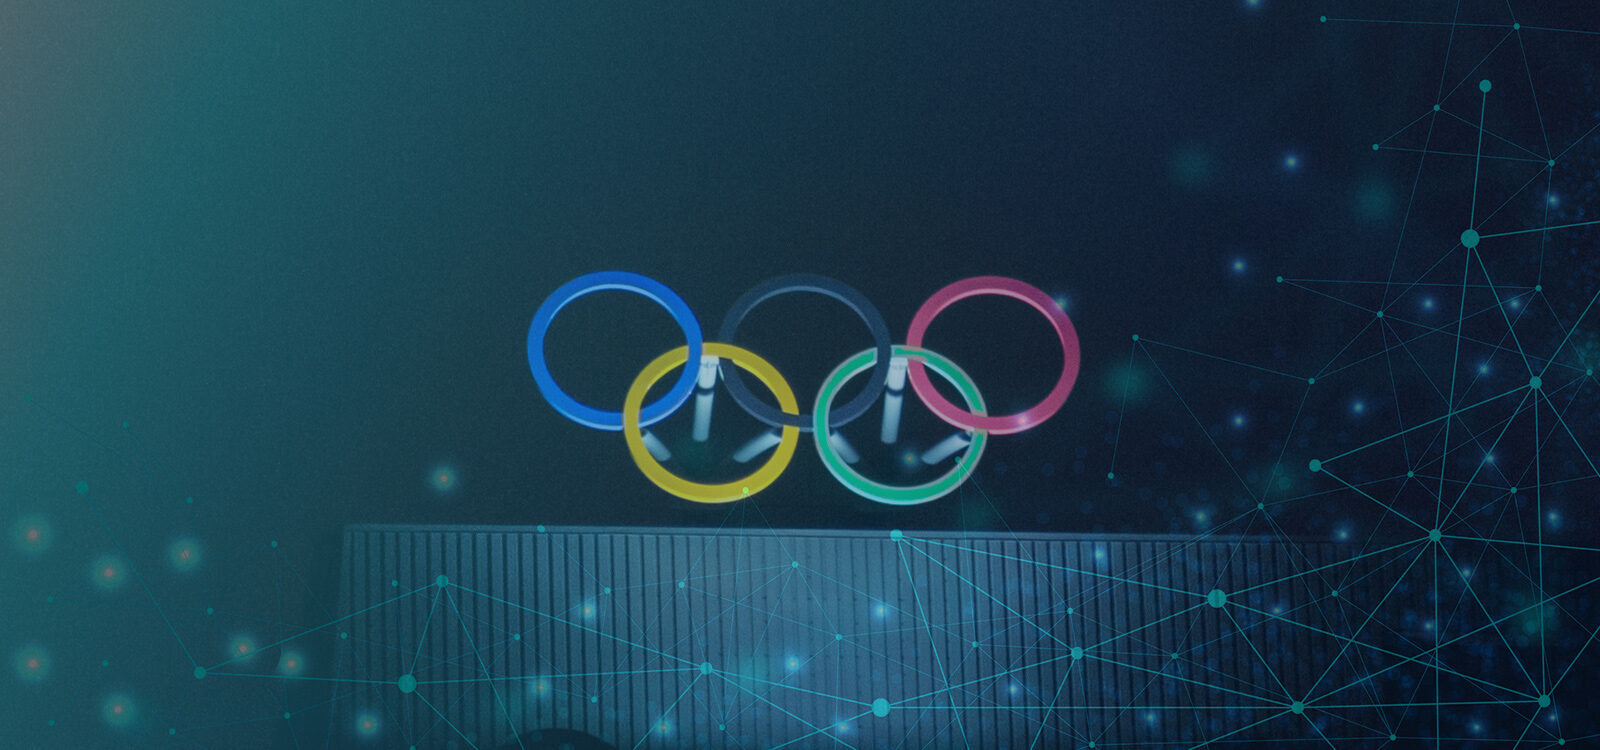 The Olympics by numbers – for people who love data and sports (but mainly data)